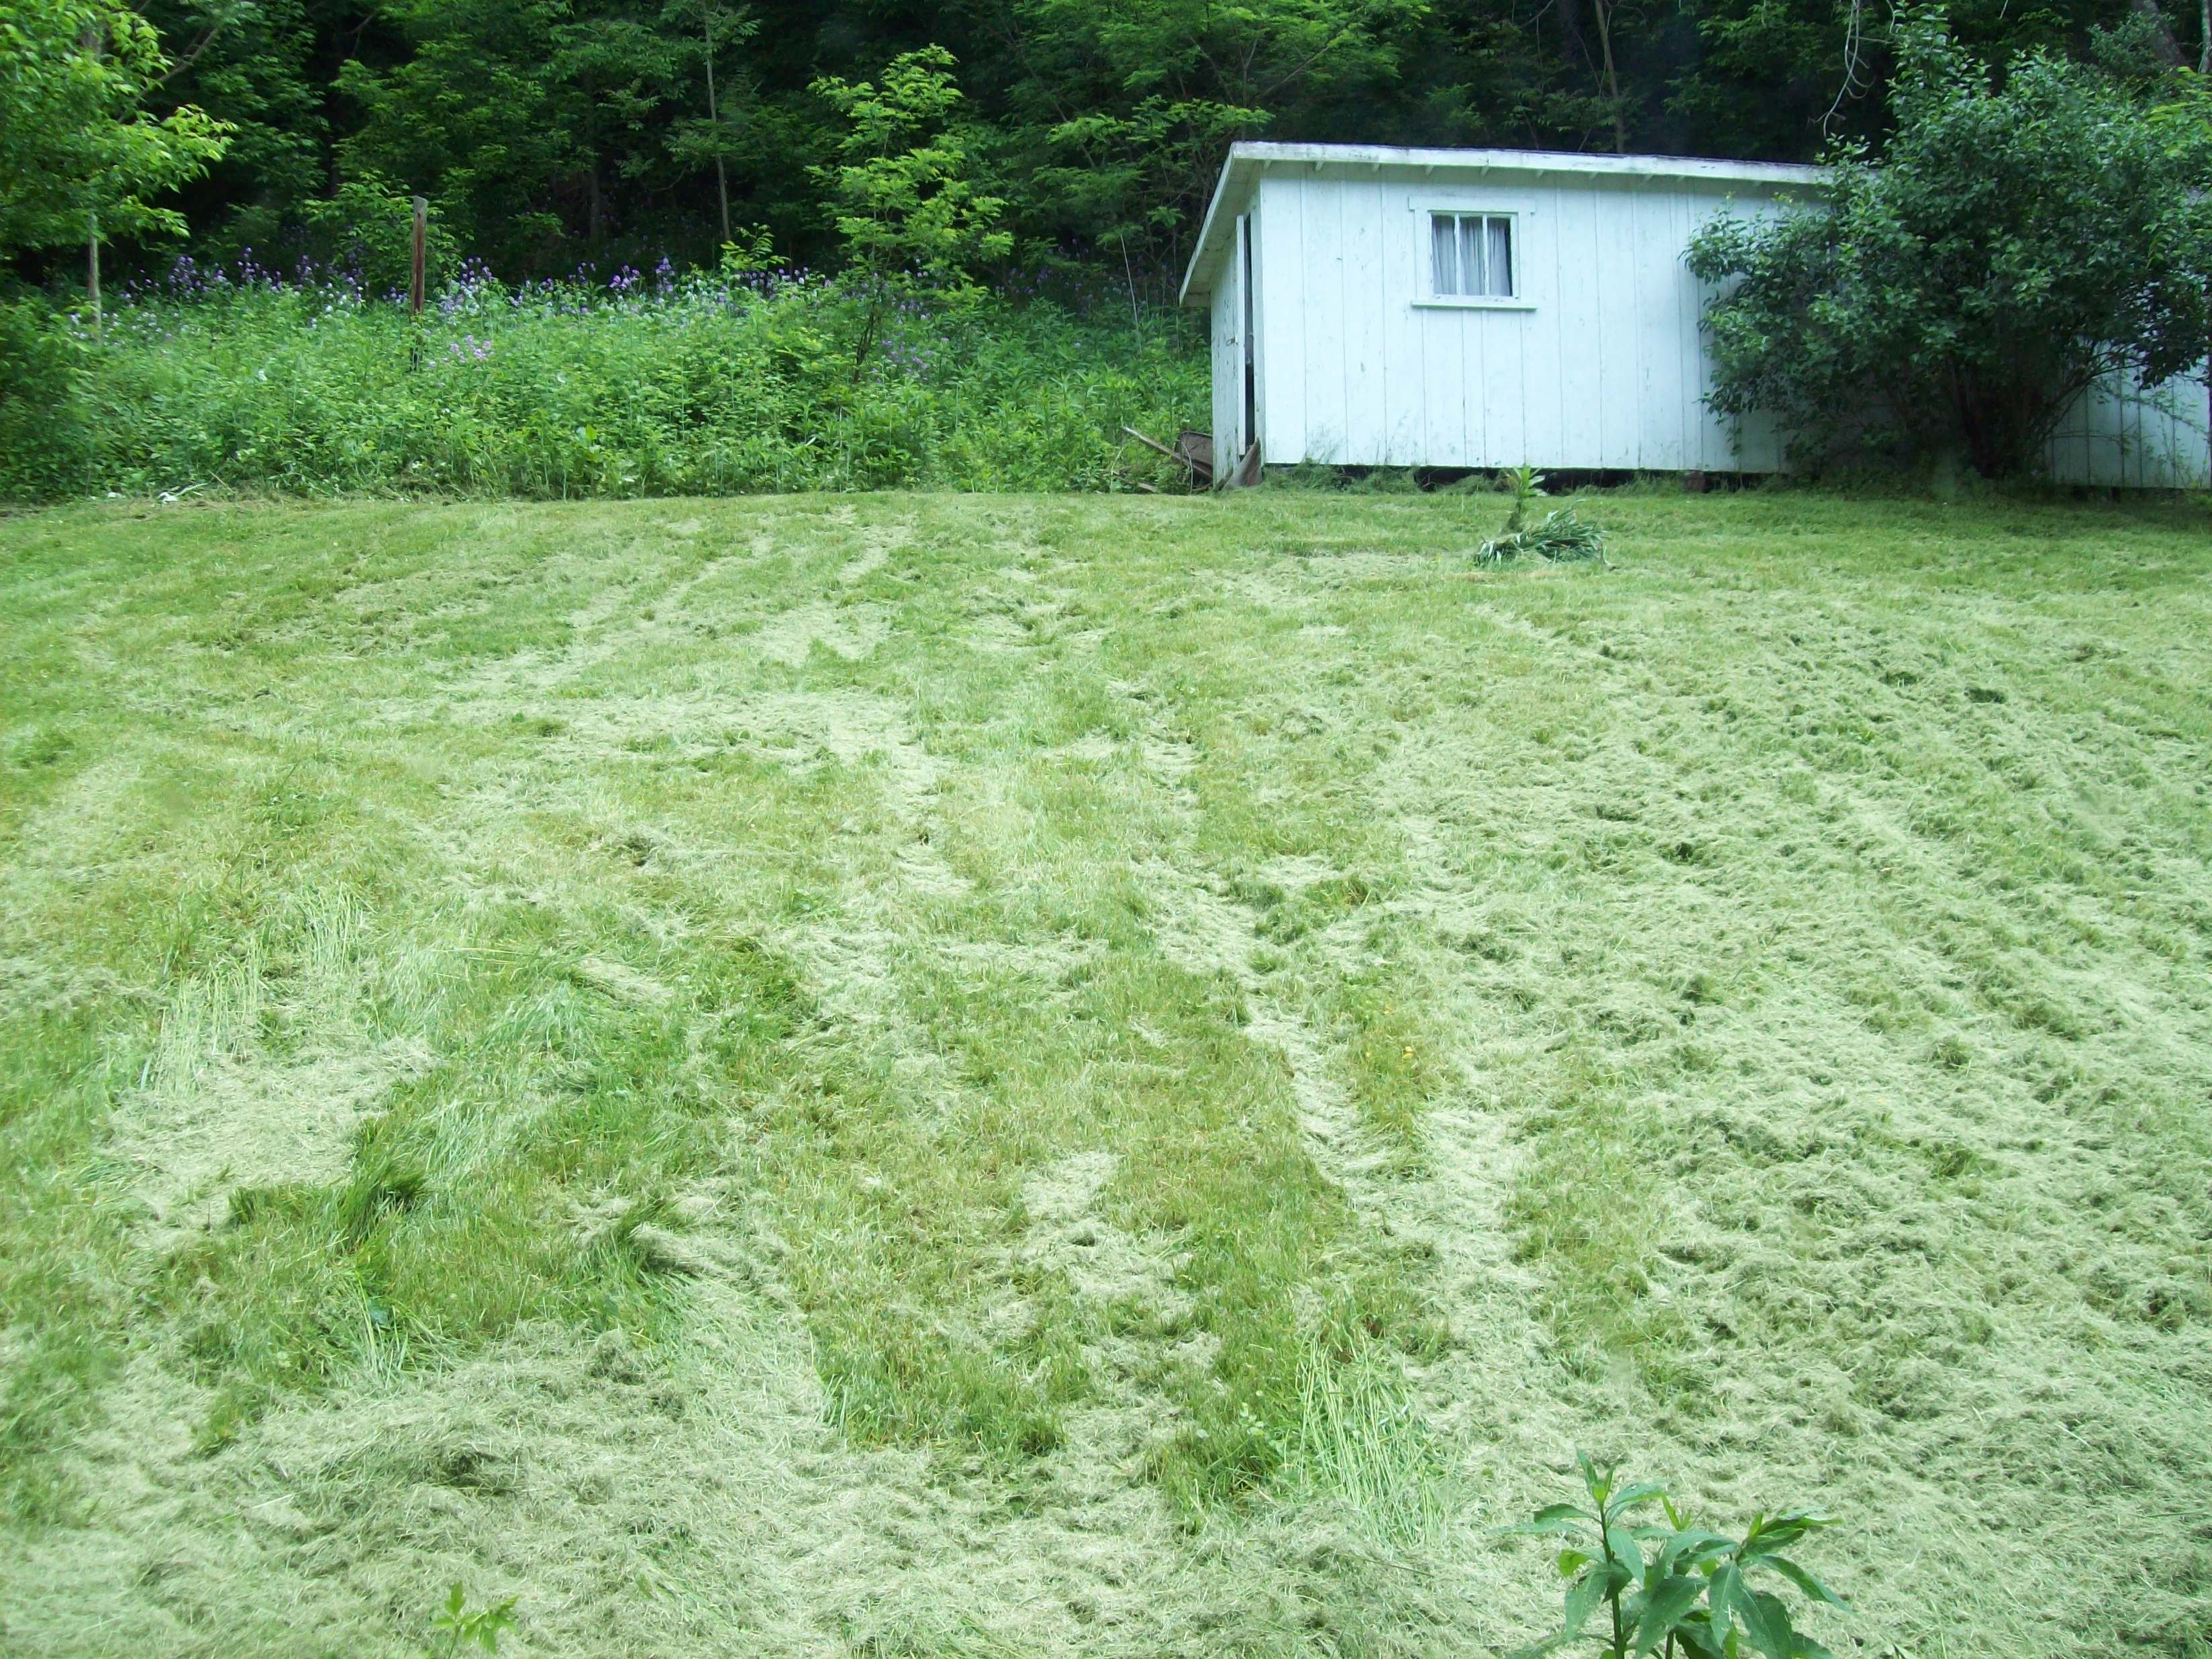 http://johndenugent.com/images/grass-clipppings-back-lawn.jpg